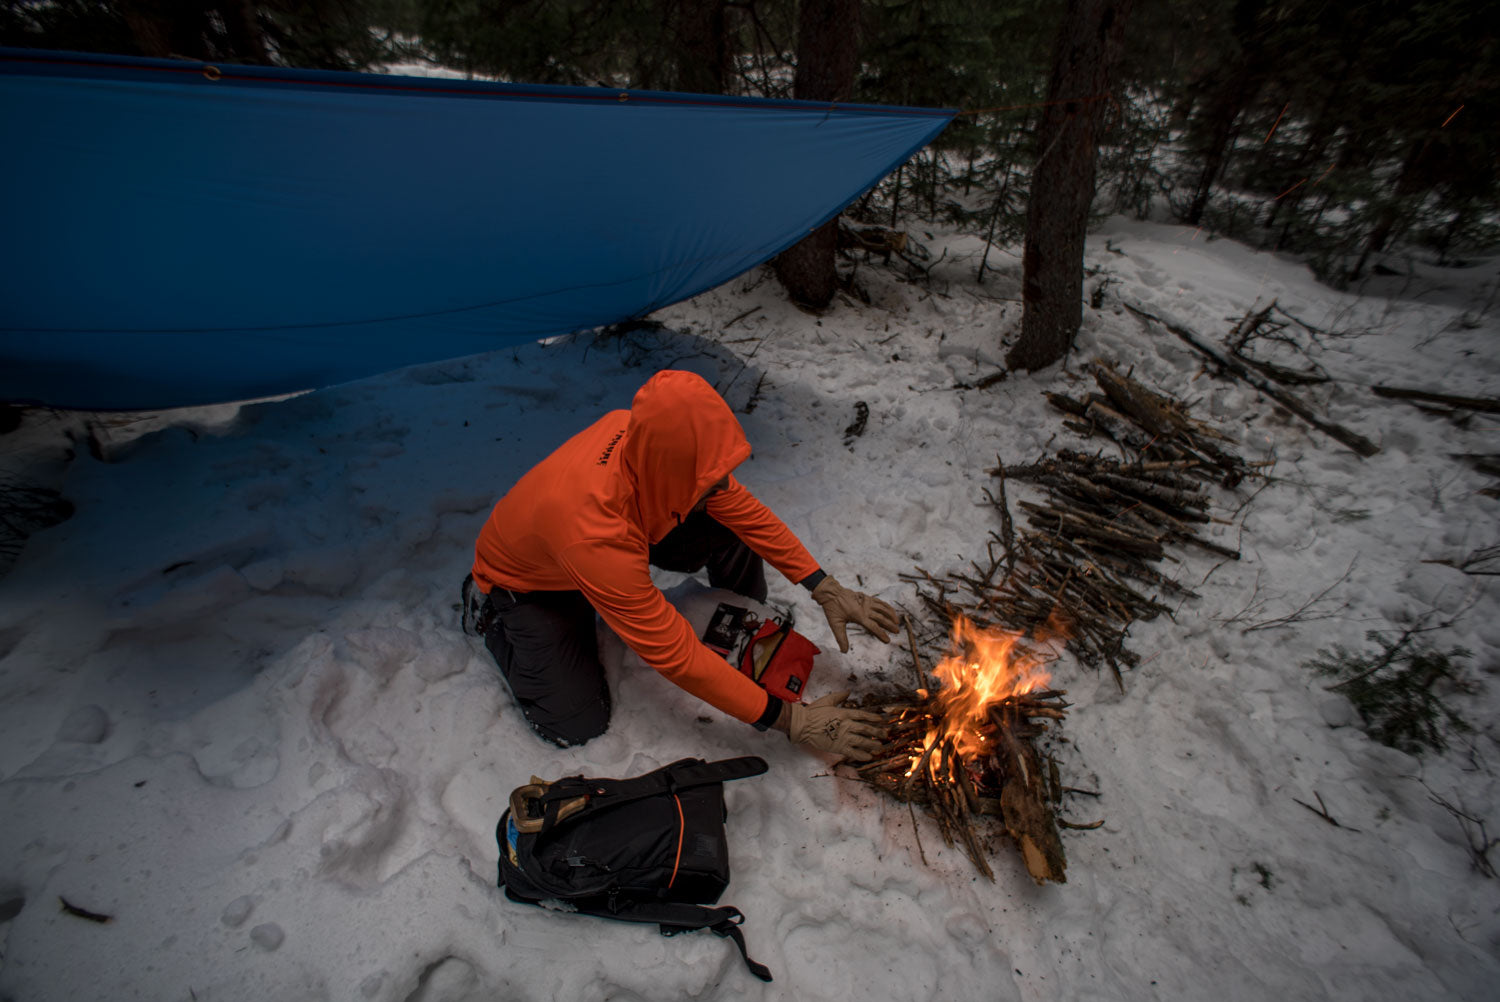 How to Build an Endure Survival Fire Starter Kit